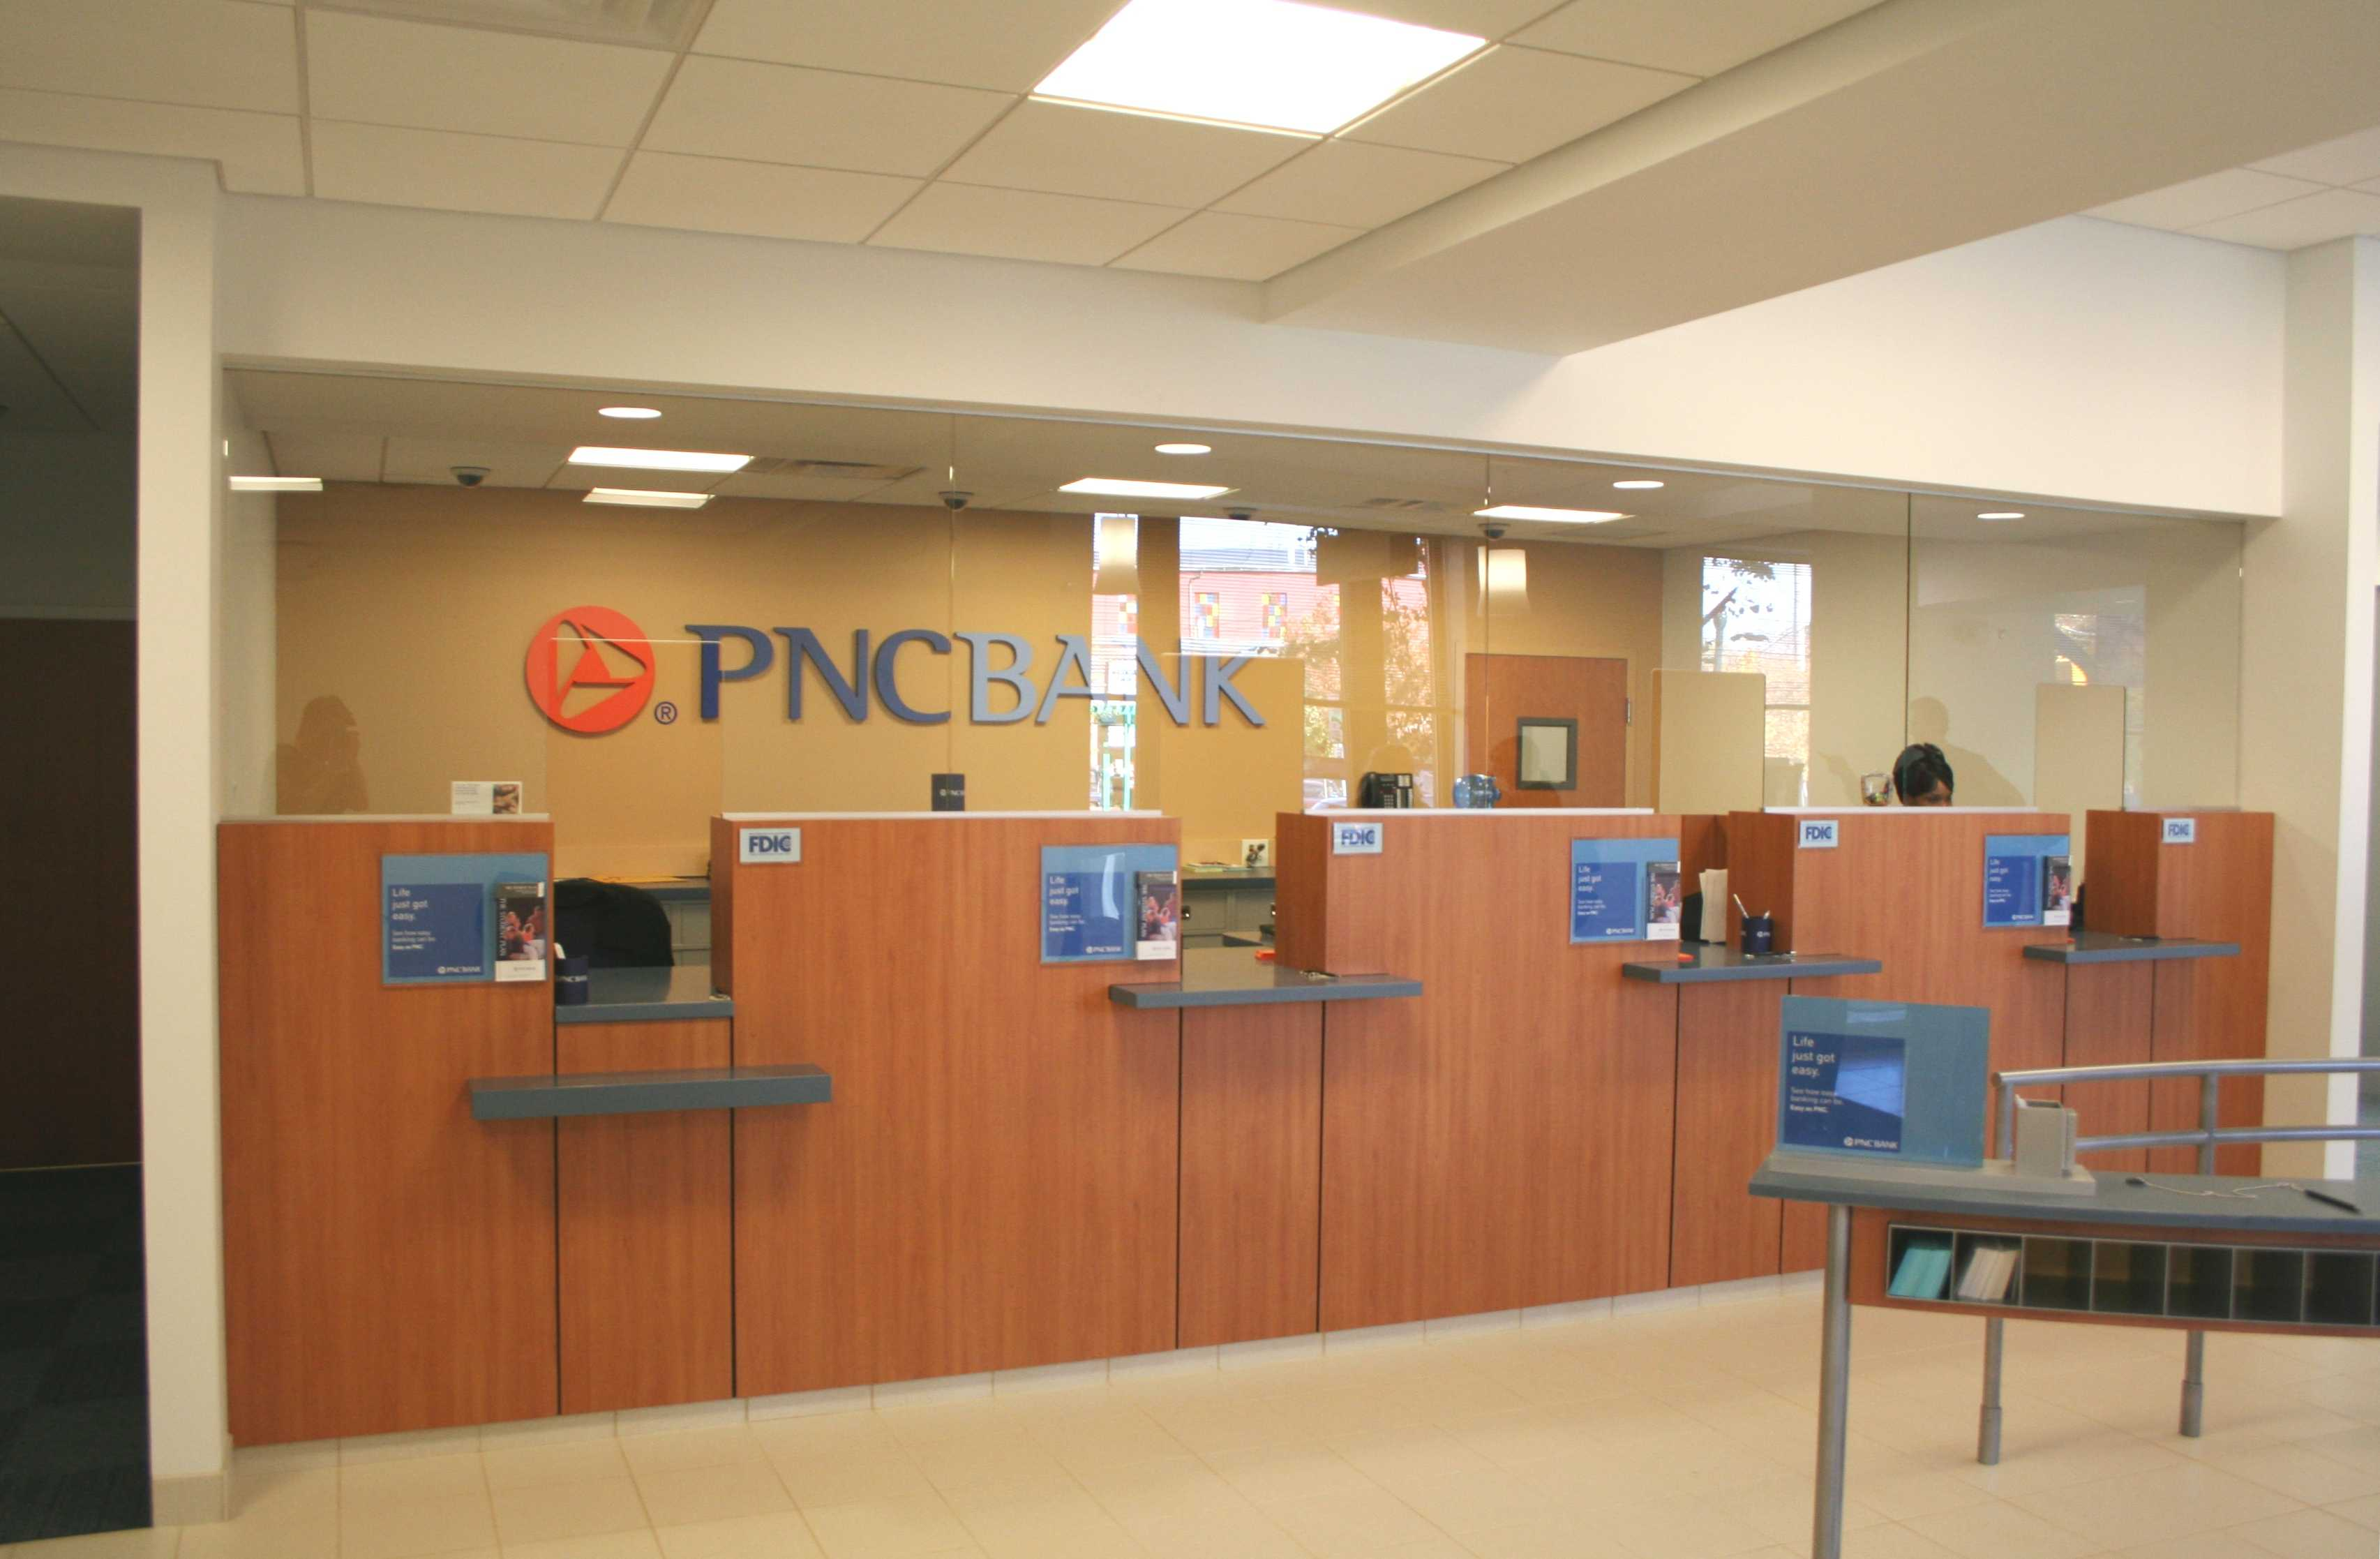 pnc bank customer service, pnc bank number